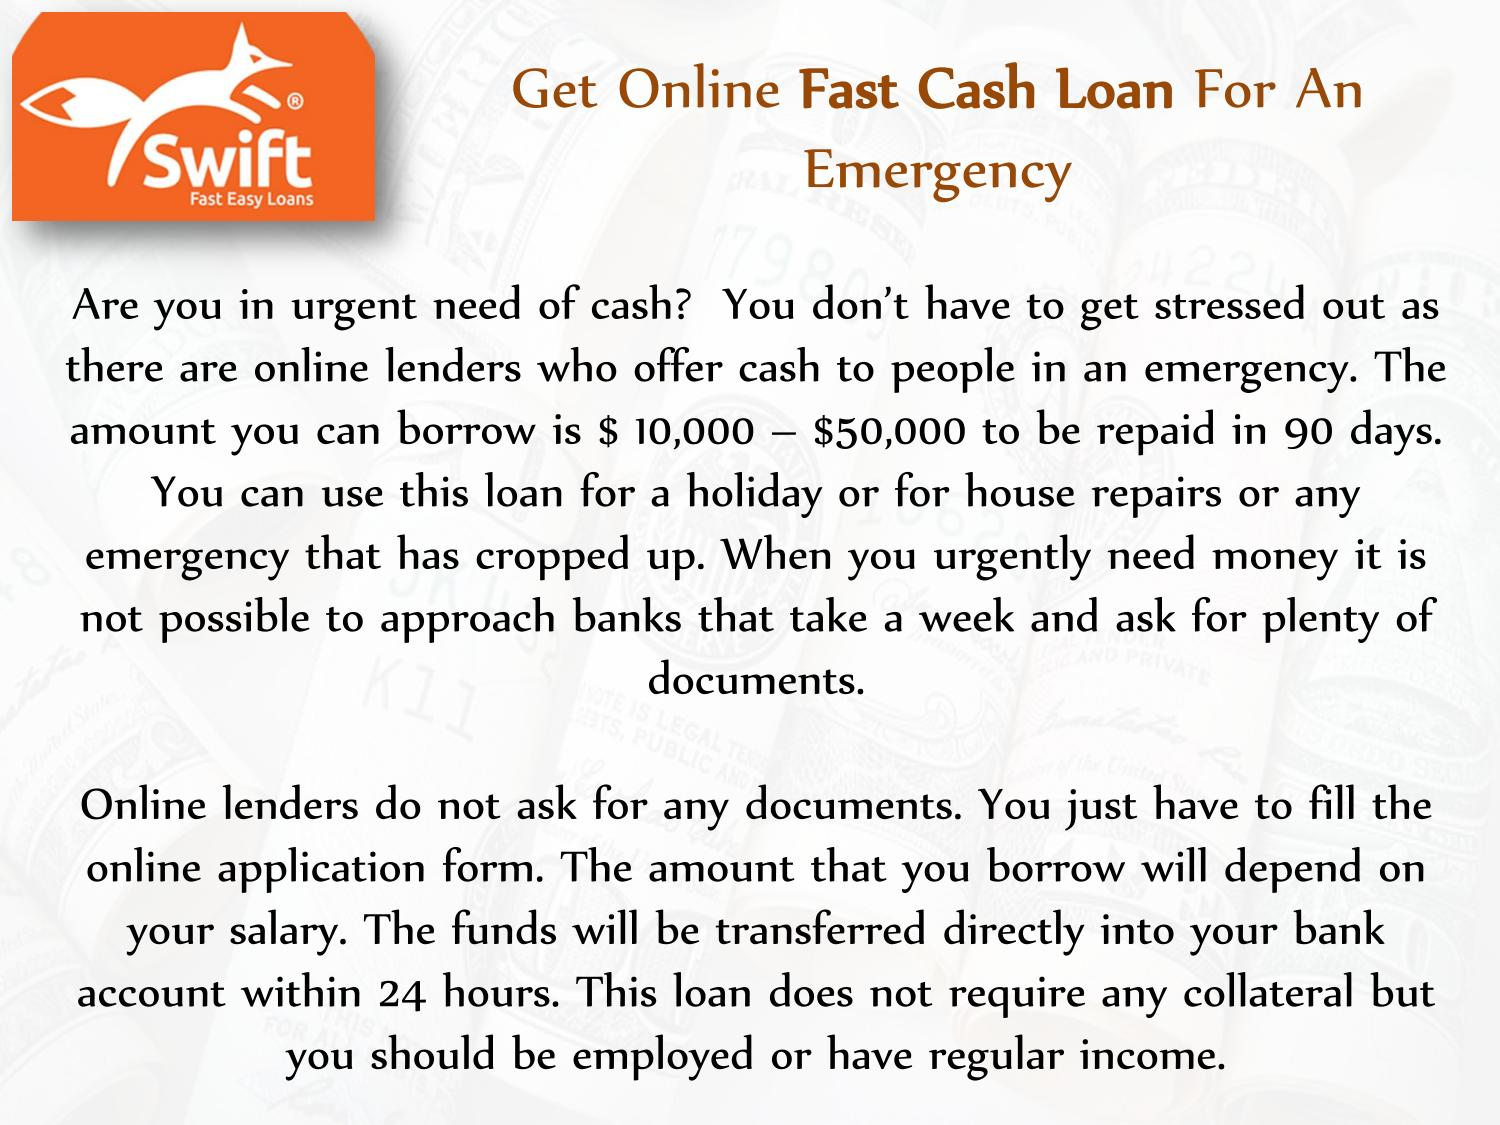 Get Online Fast Cash Loan For An Emergency by Swift Loans